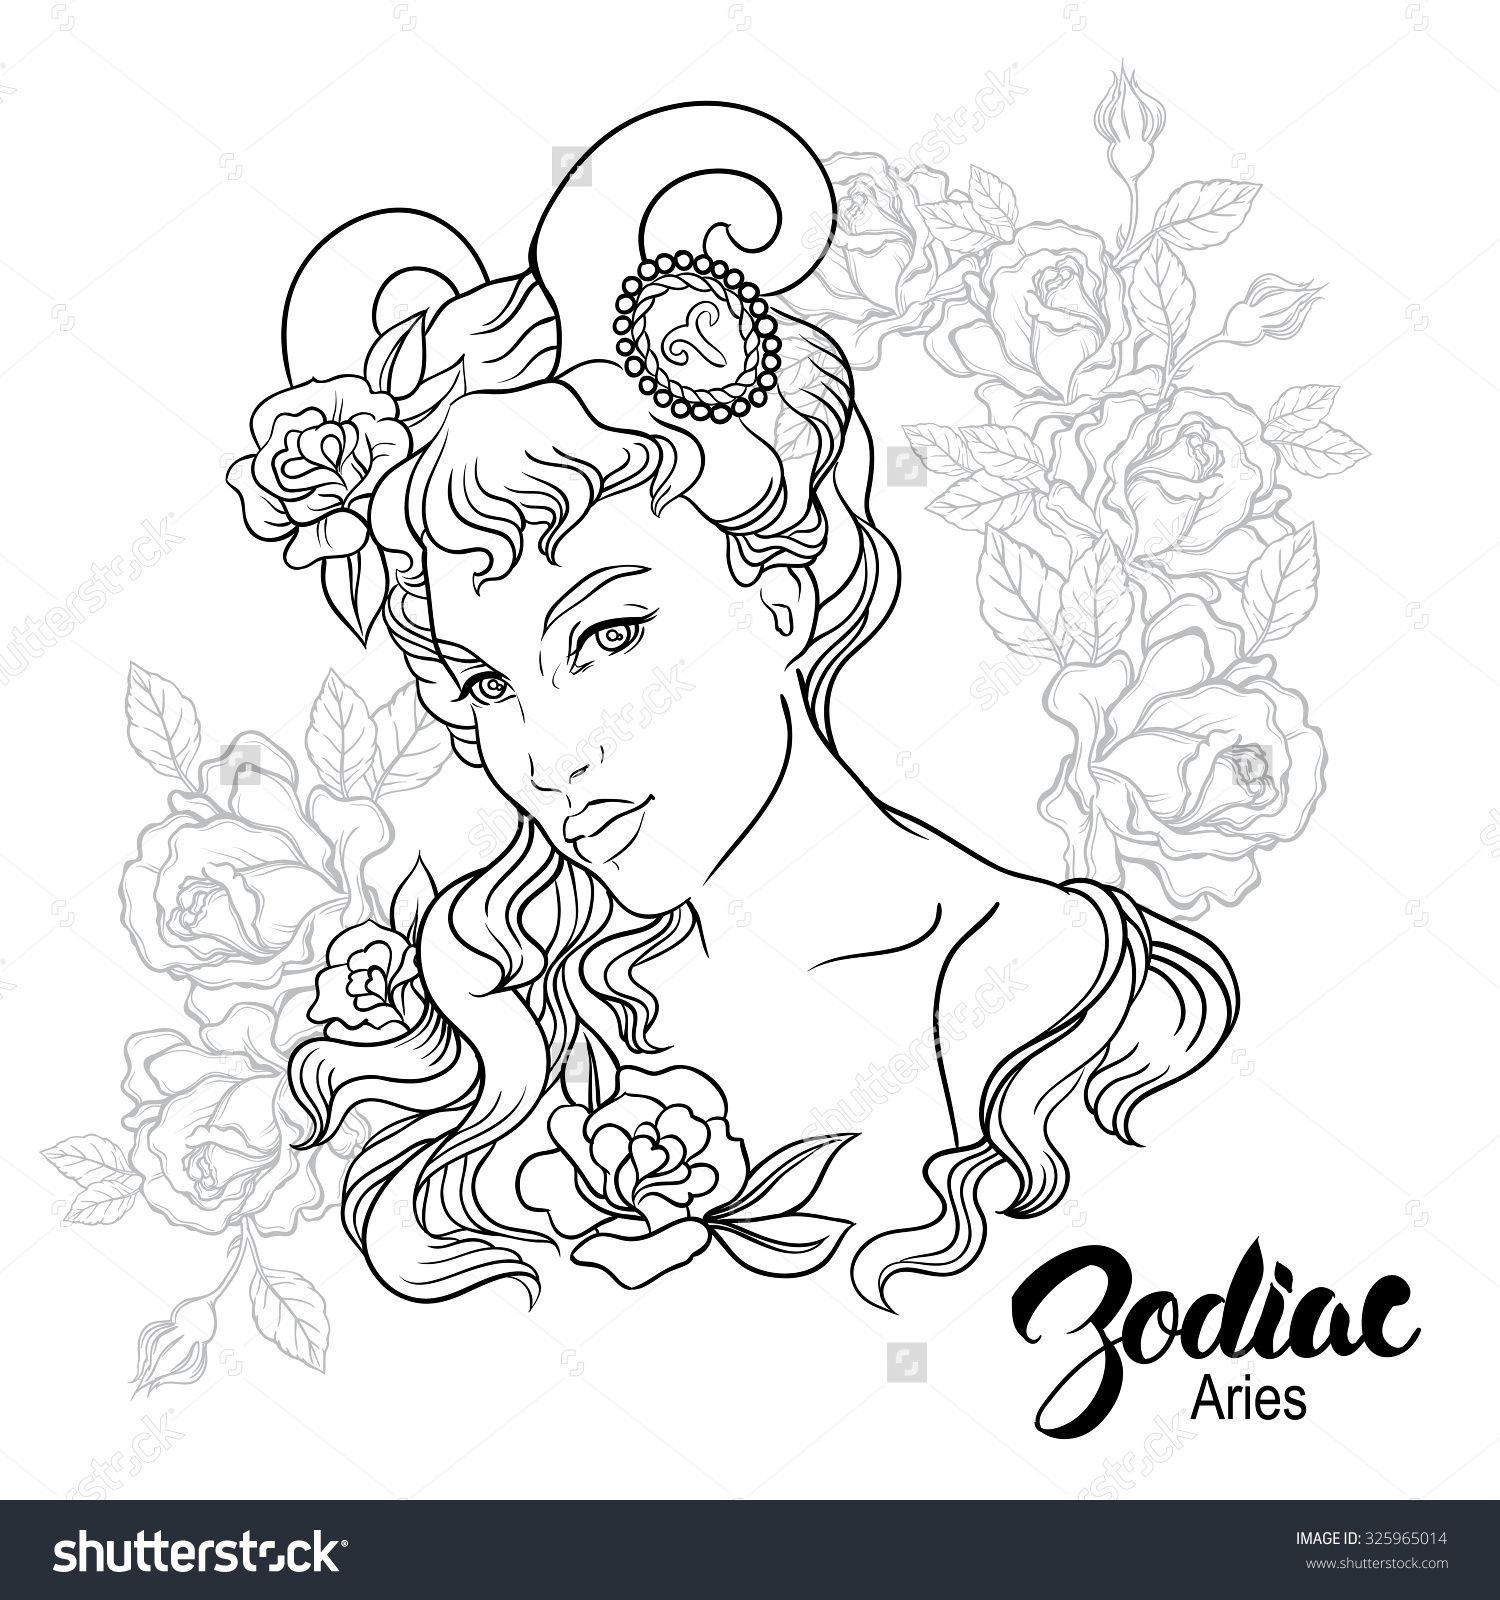 Zodiac Aries Girl Coloring Page Shutterstock 325965014